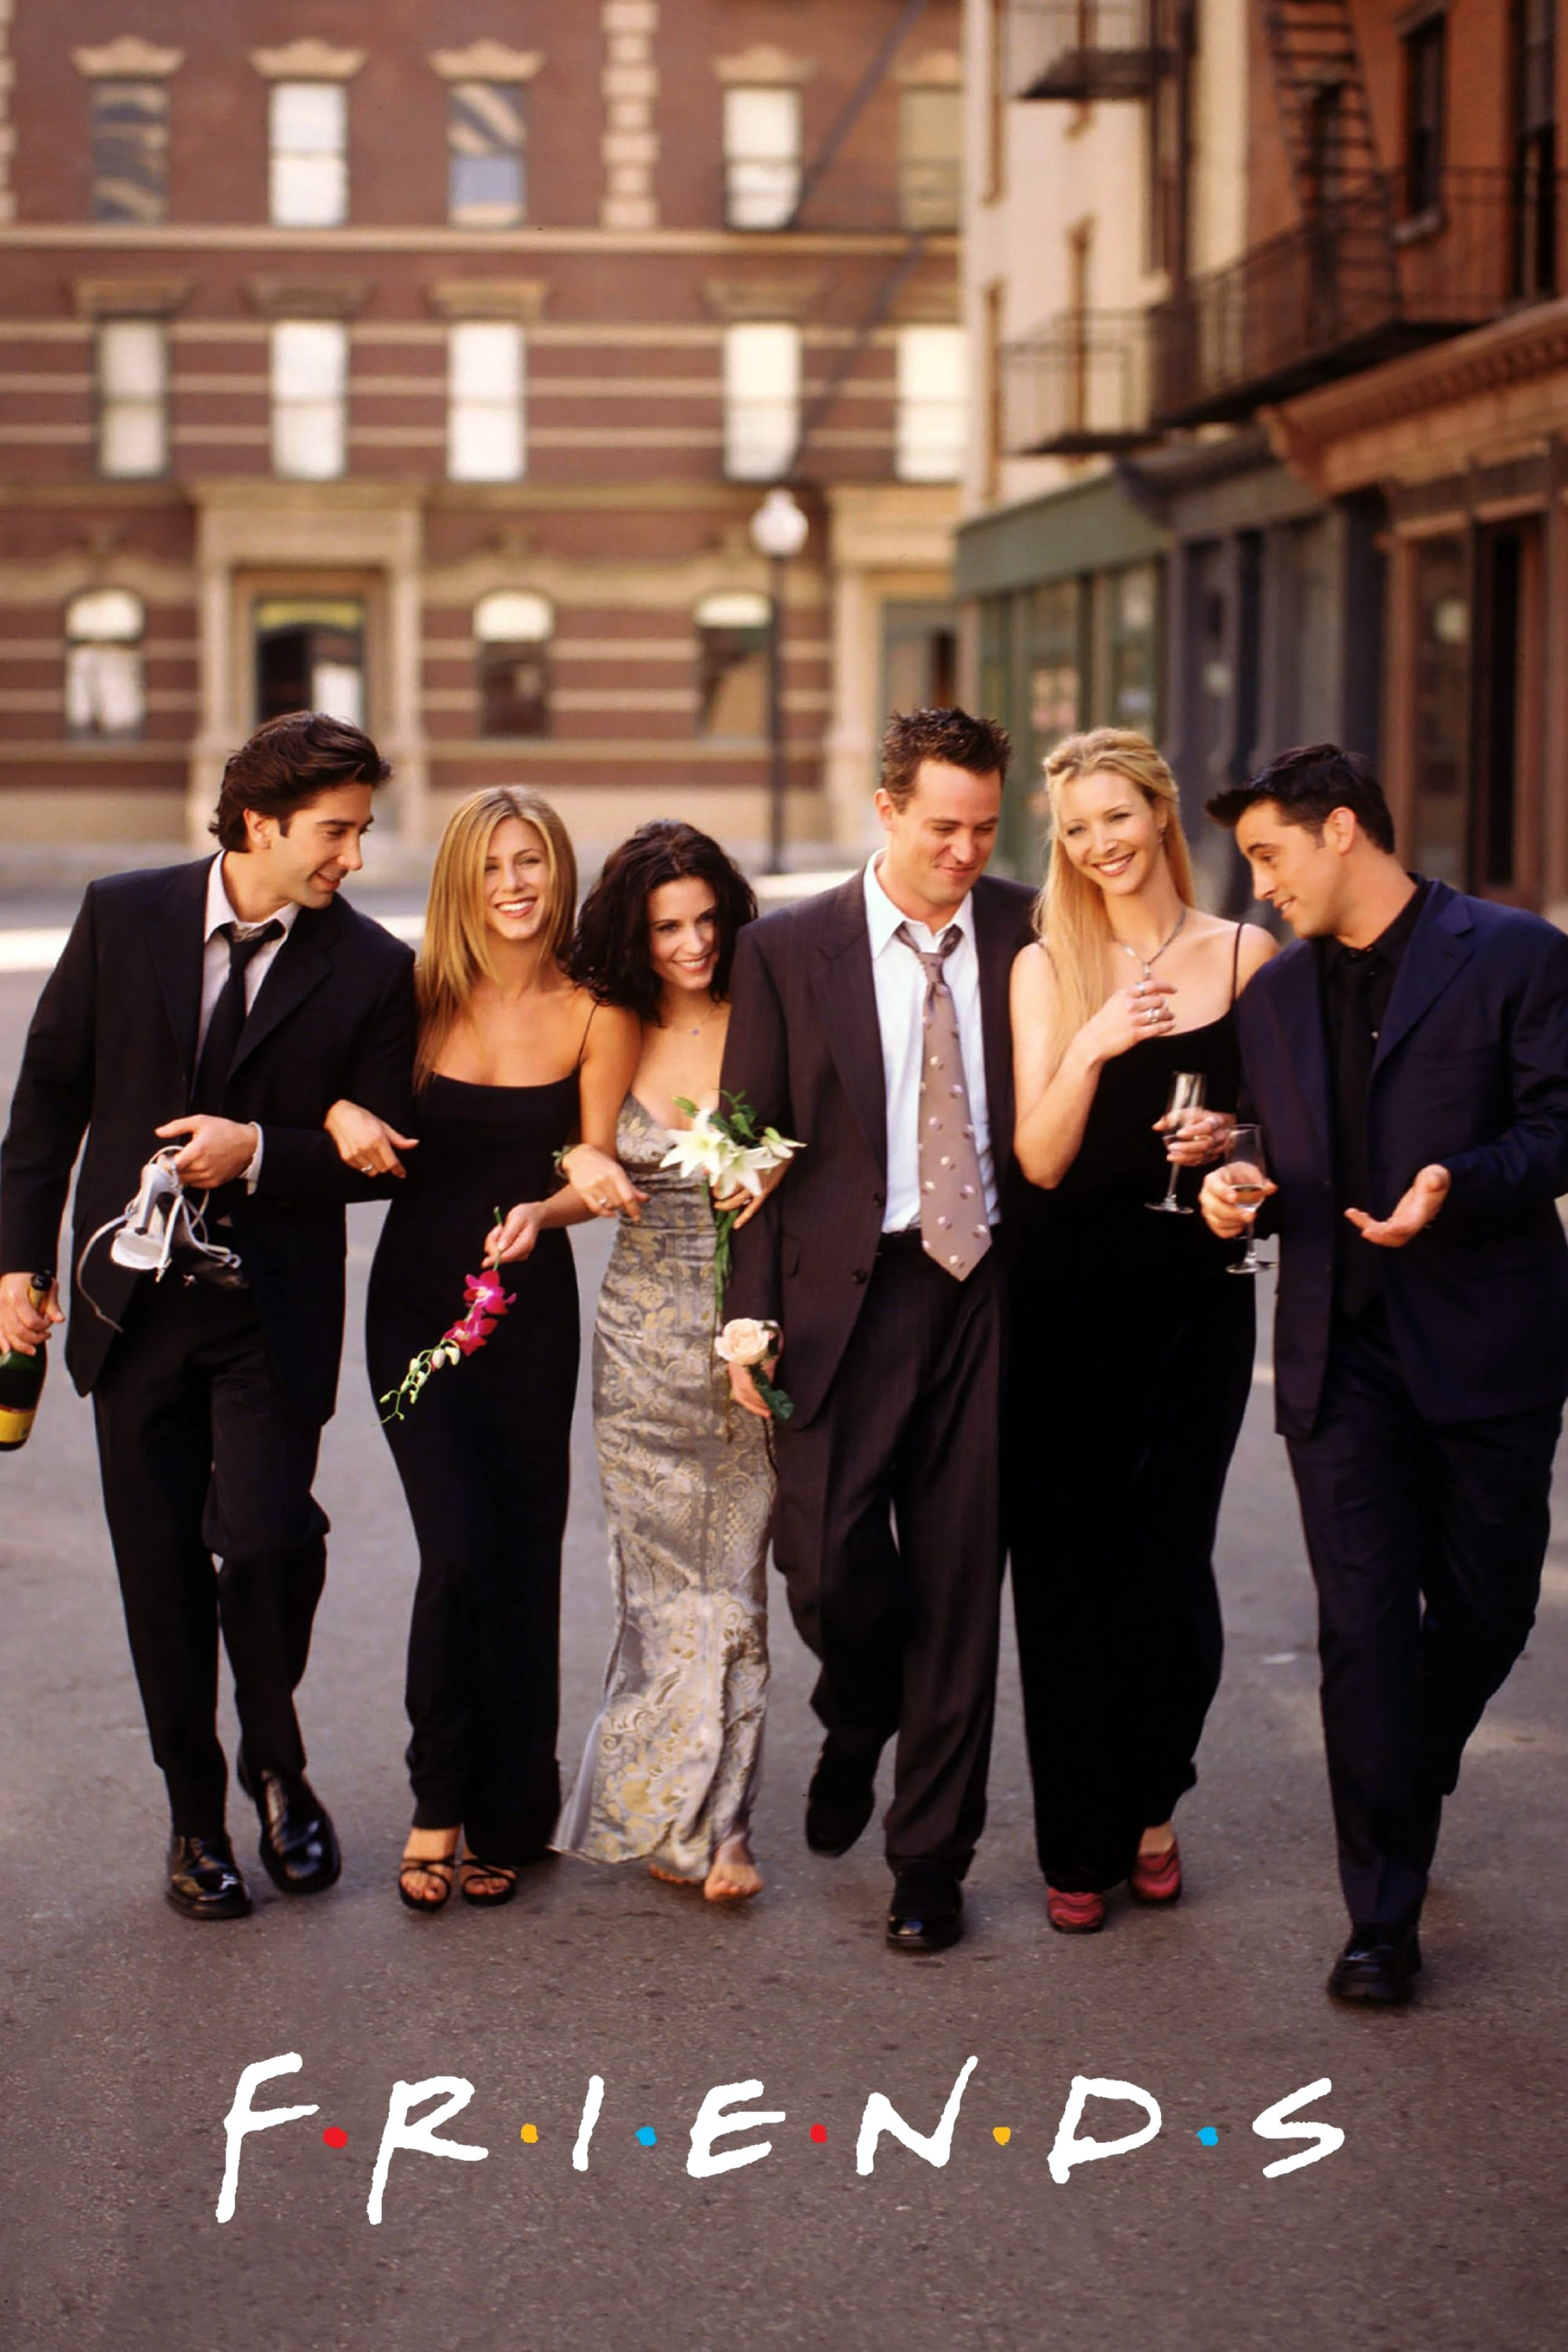 Friends Season 4 Complete